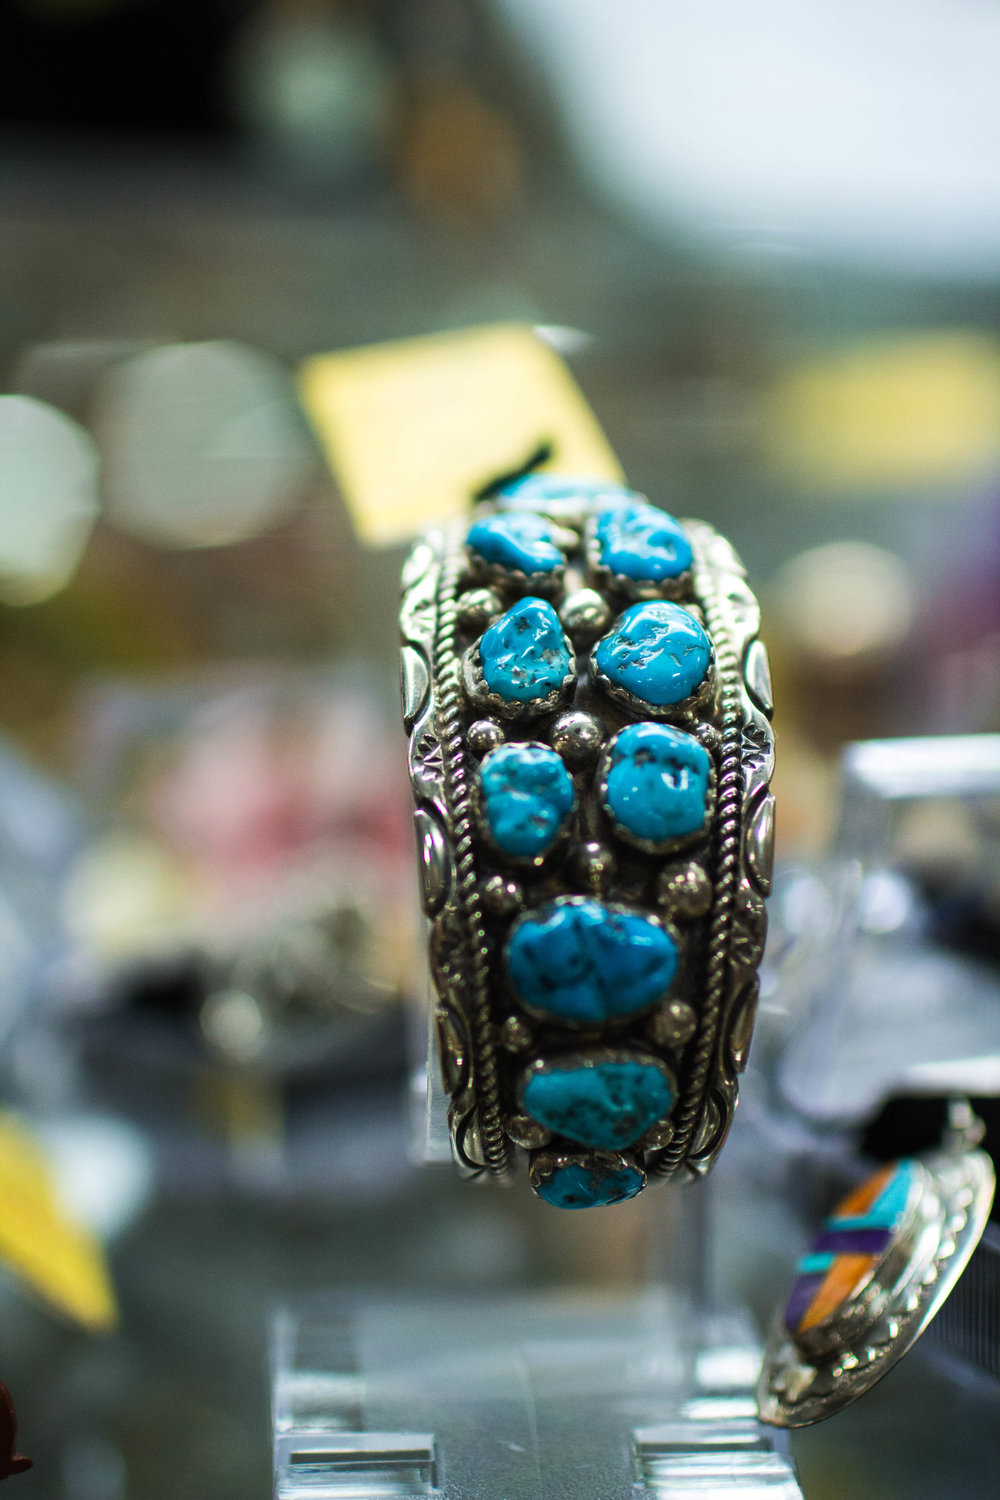 Turquoise lovers help discover makers of Native American Art and will make suggestions of authenticity, turquoise type and quality affecting value.  - We appreciate their assistance